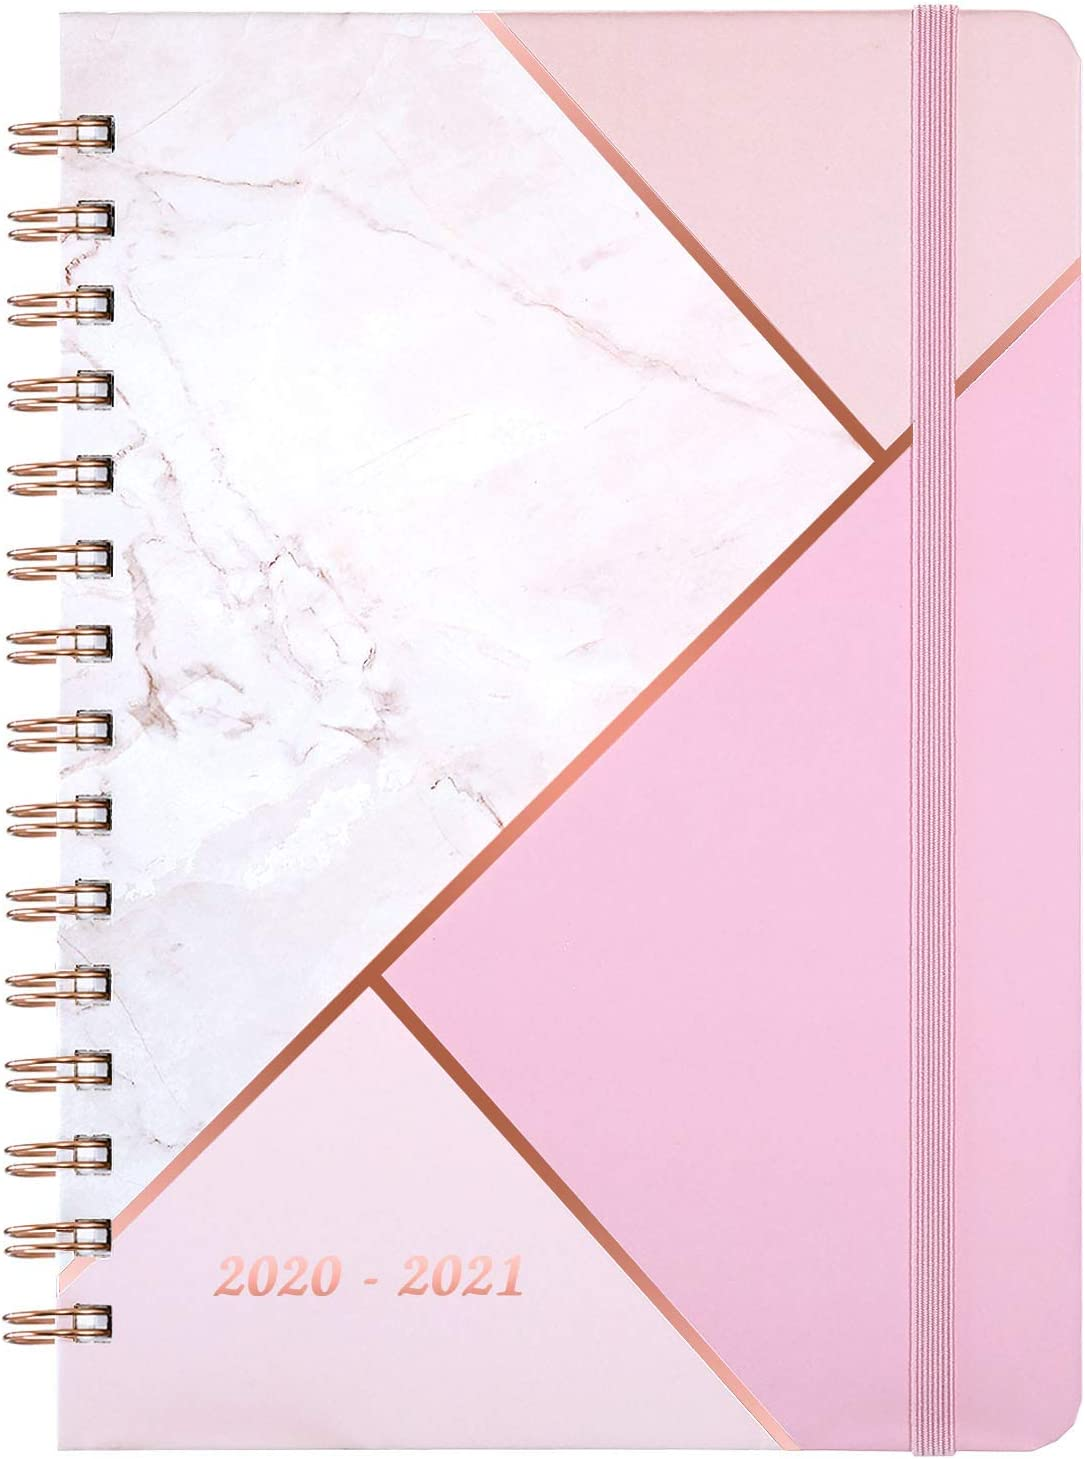 """2020-2021 Planner - Academic Weekly & Monthly Planner with Tabs, 6.3"""" x 8.4"""", July 2020 - June 2021, Hardcover with Back Pocket + Thick Paper + Banded, Twin-Wire Binding - Pink Marble"""